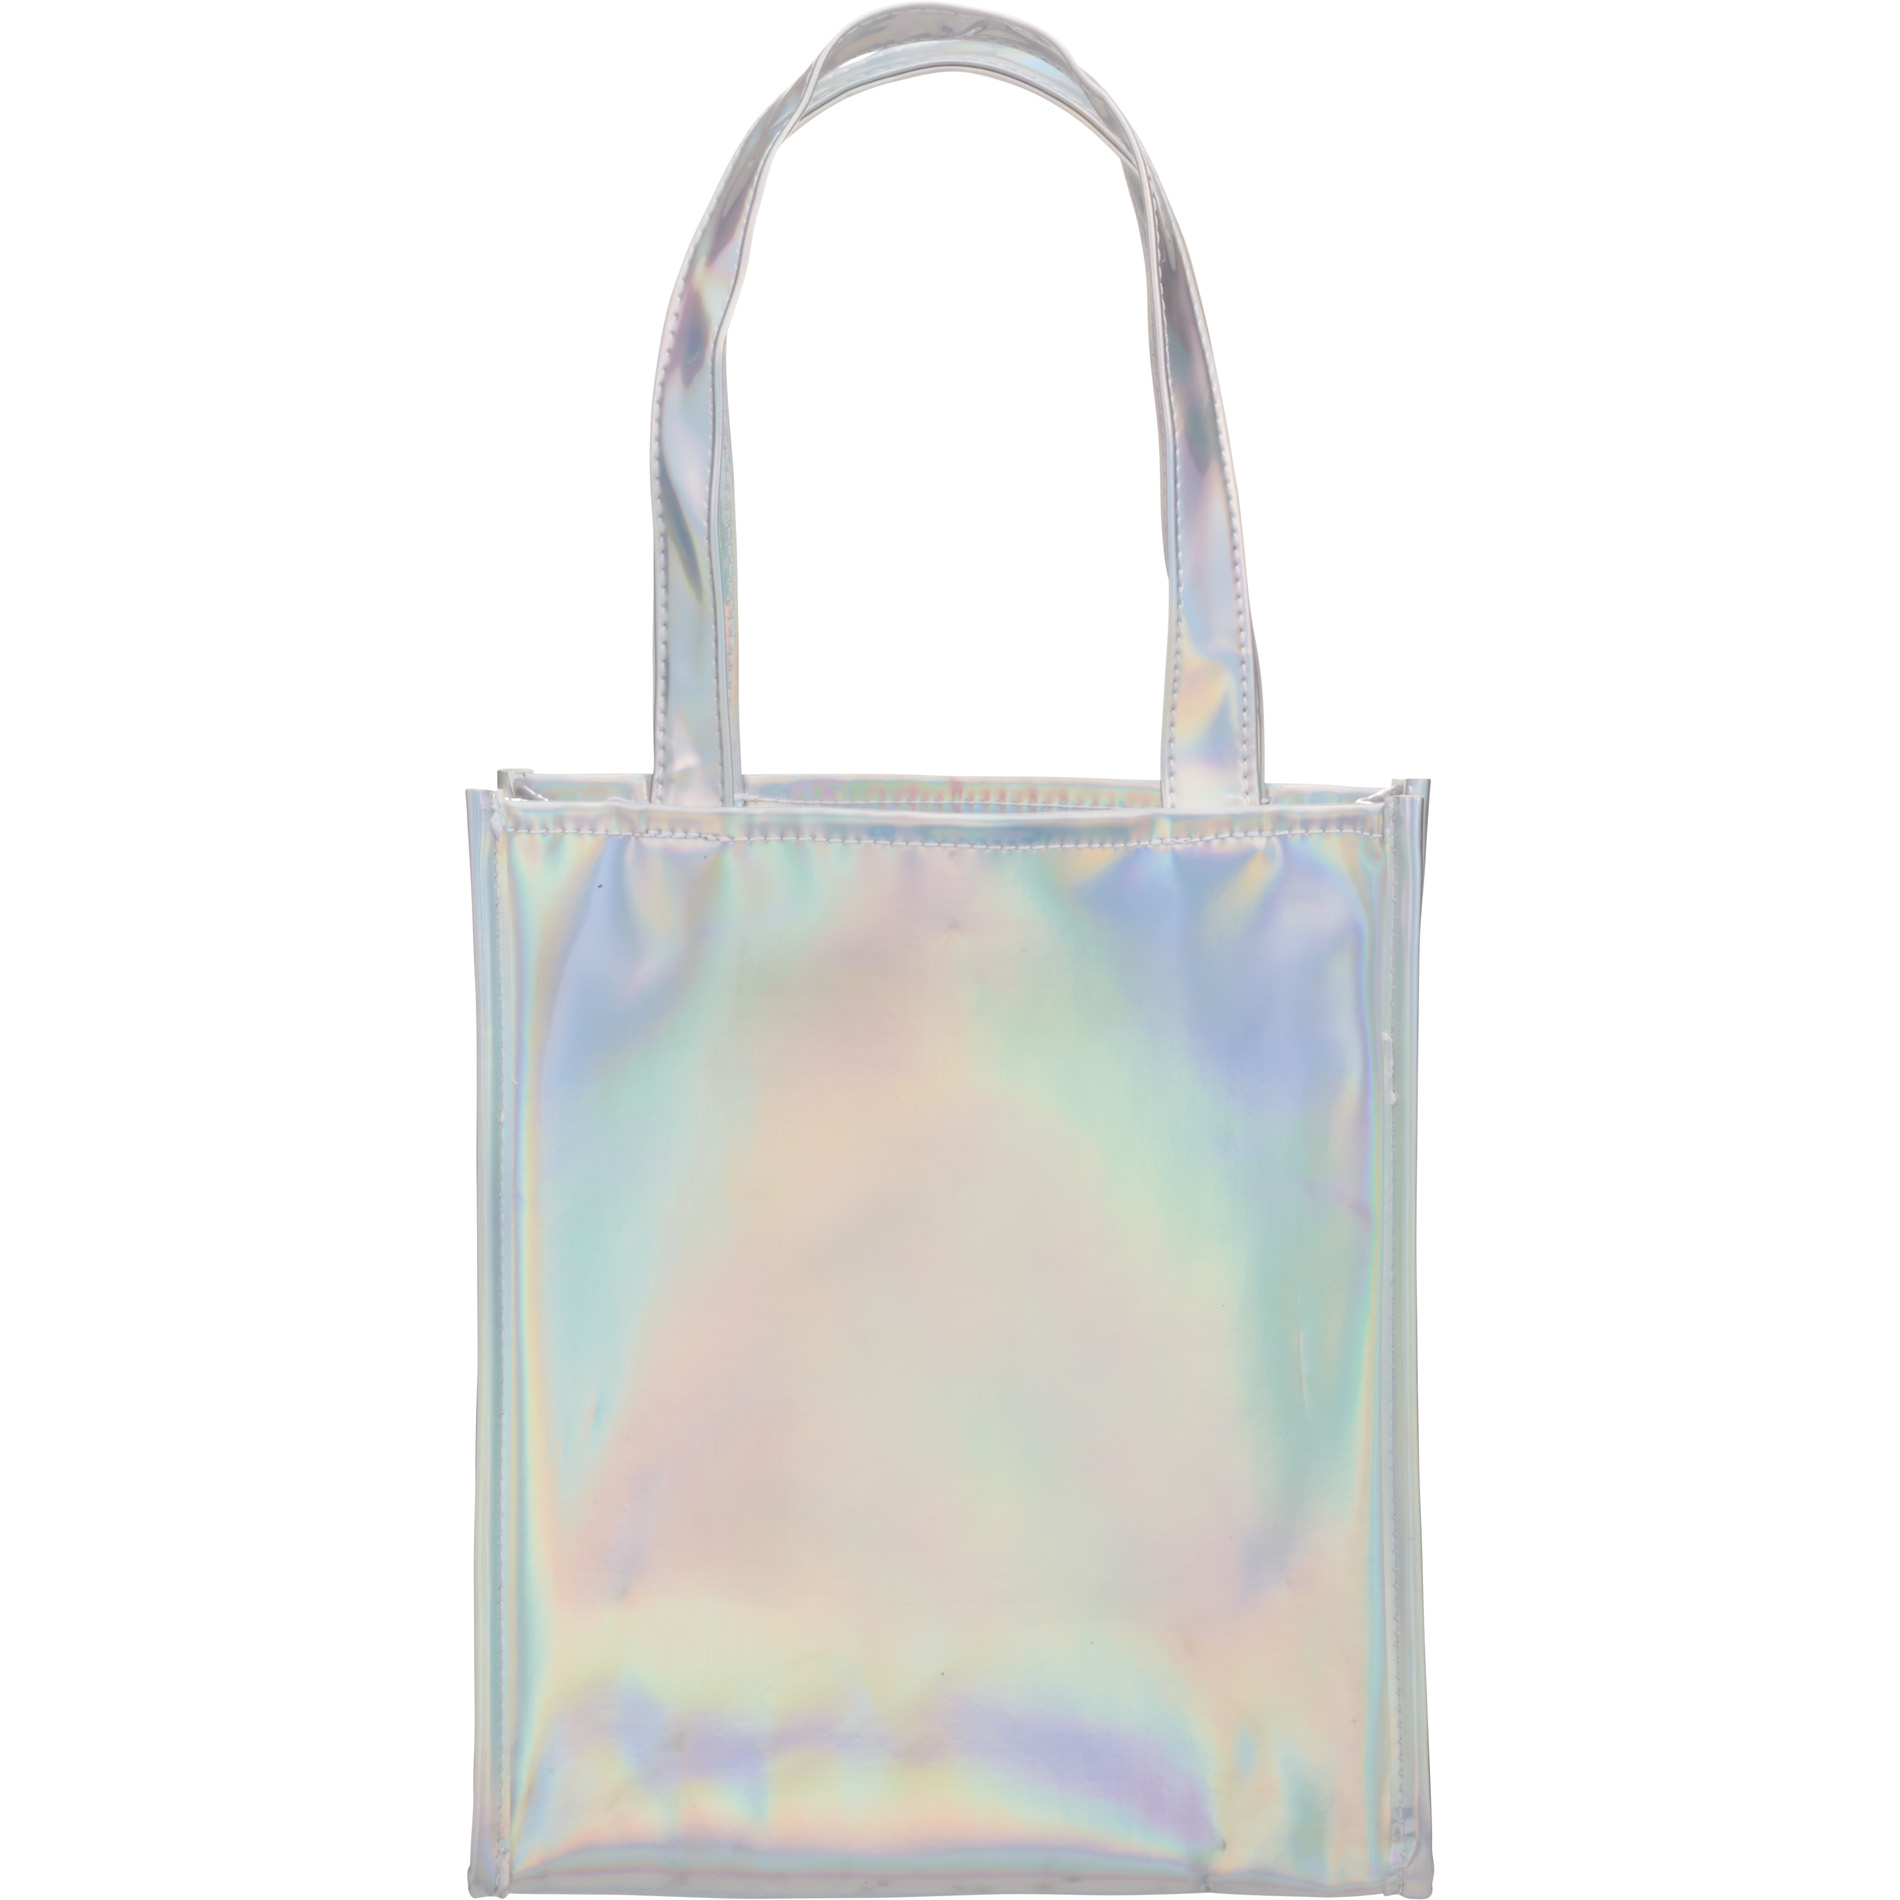 LEEDS 2190-12 - Holographic Gift Tote